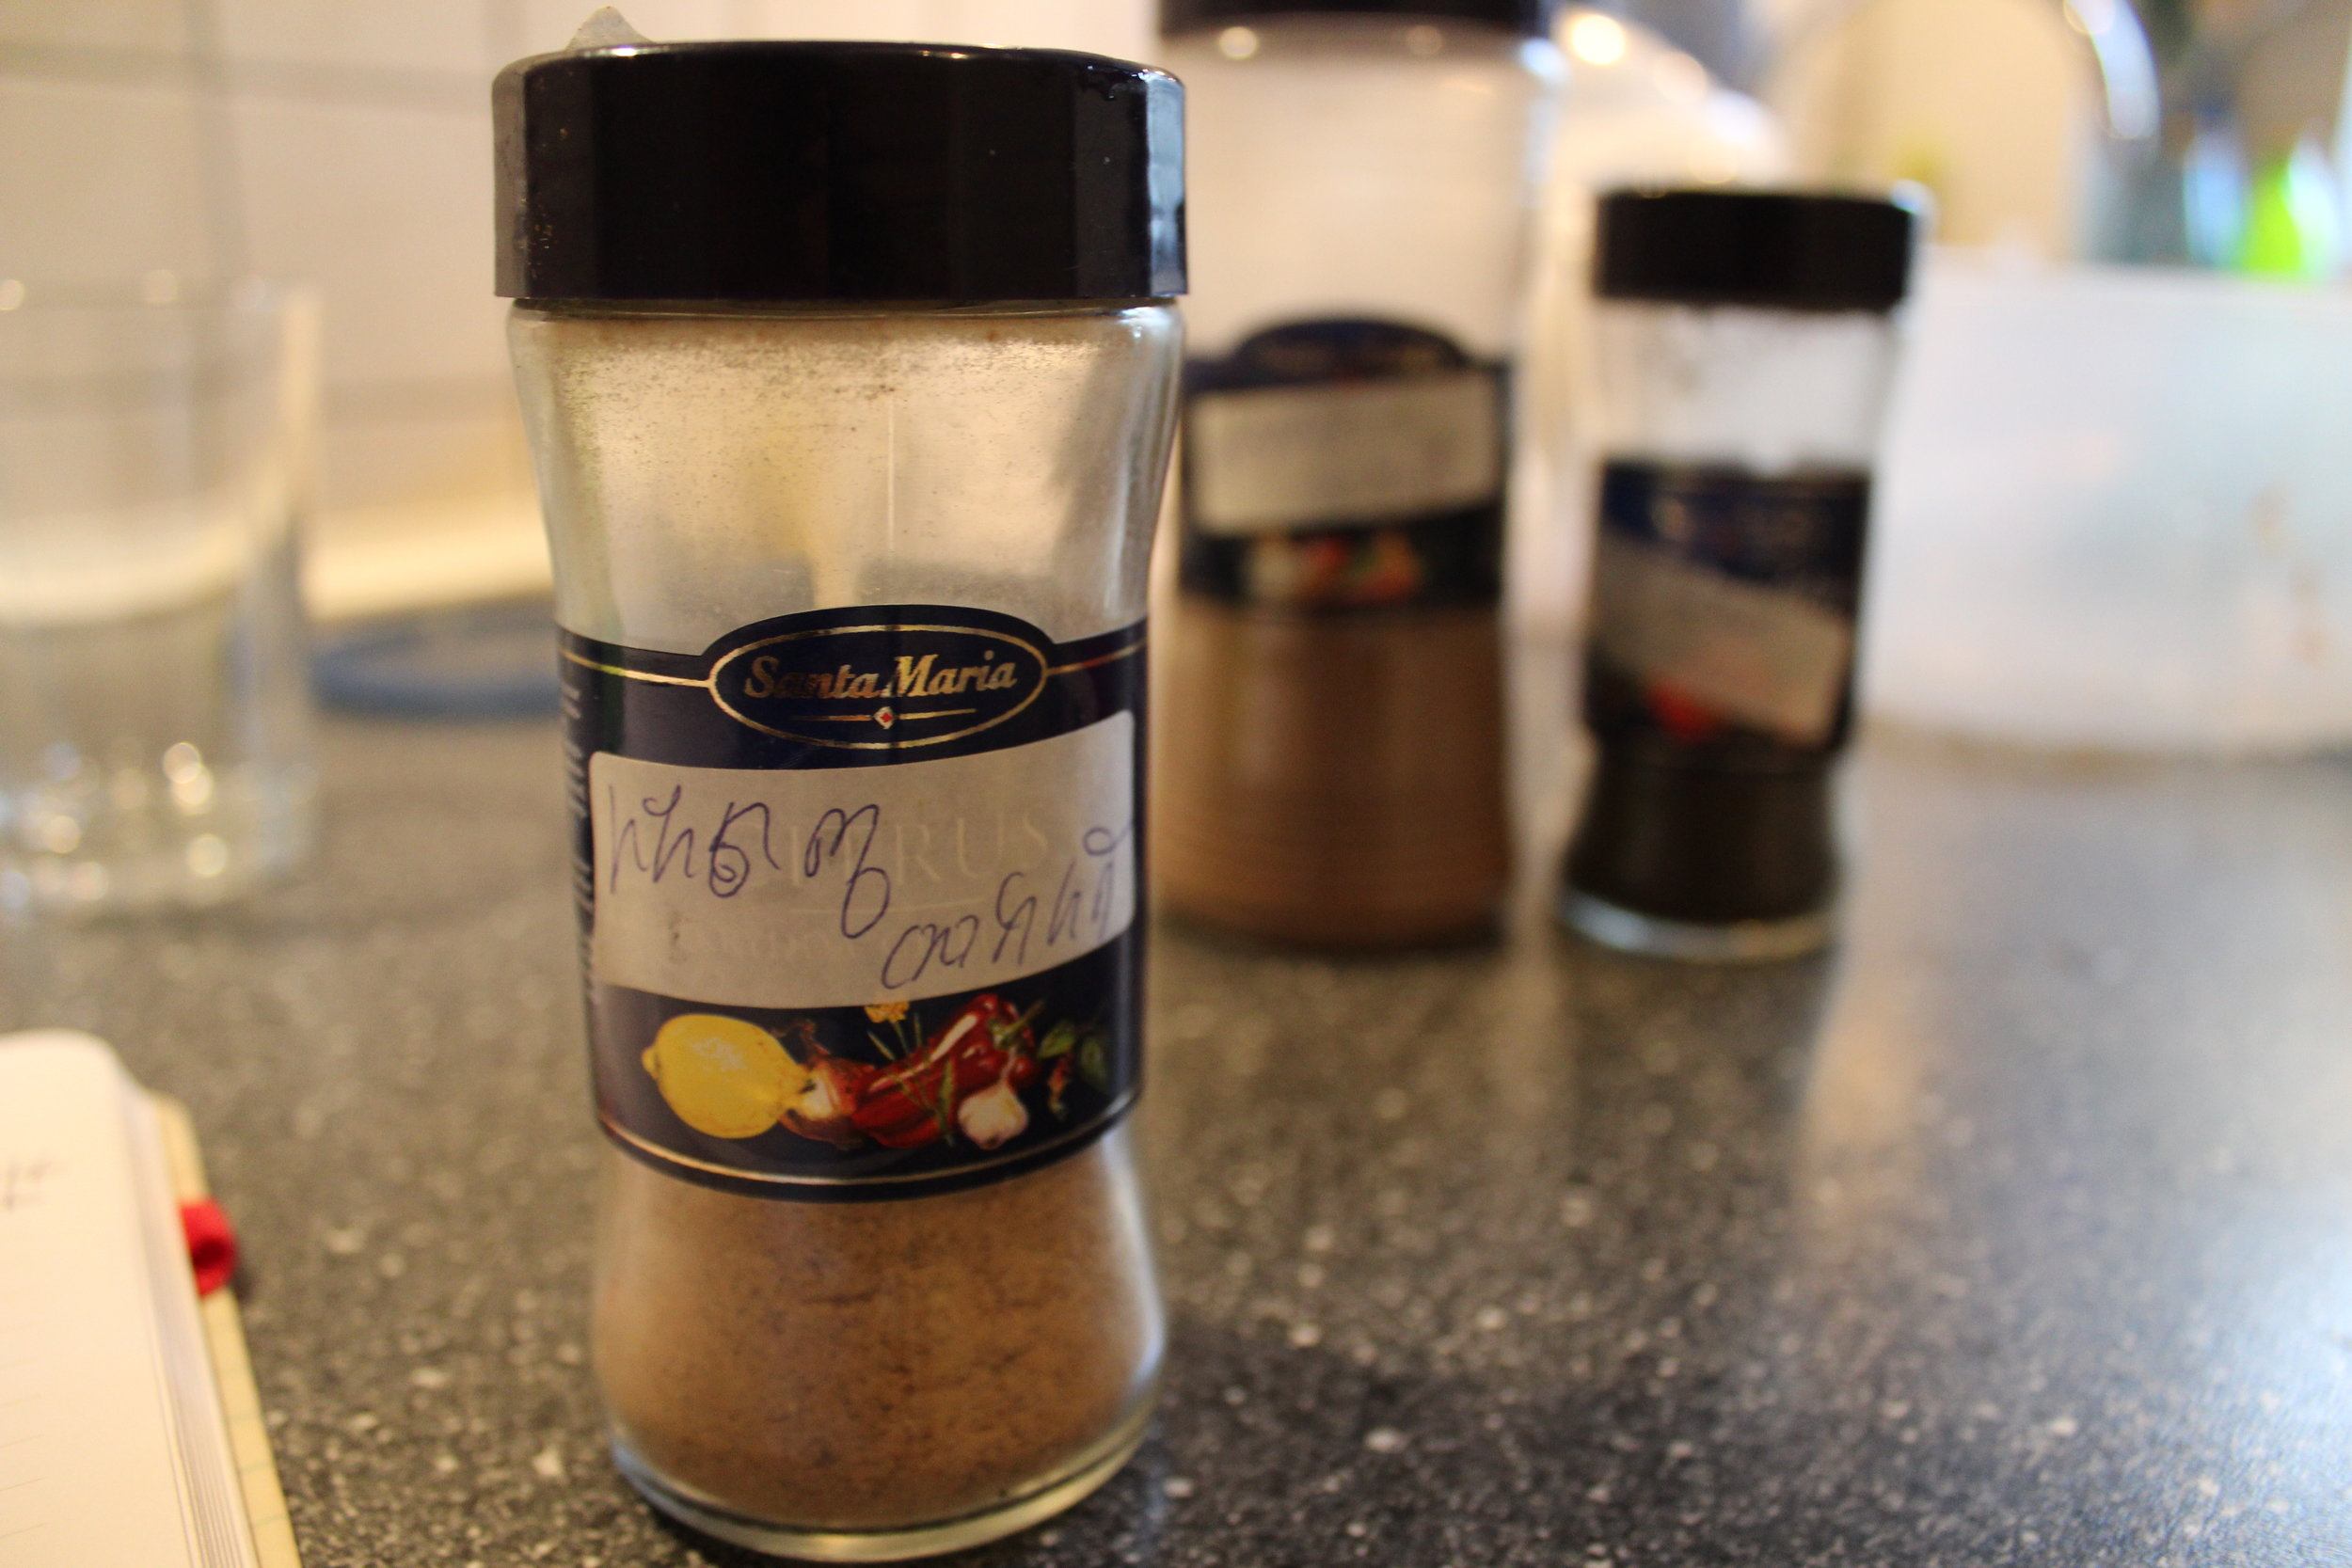 Spices from Ethiopia